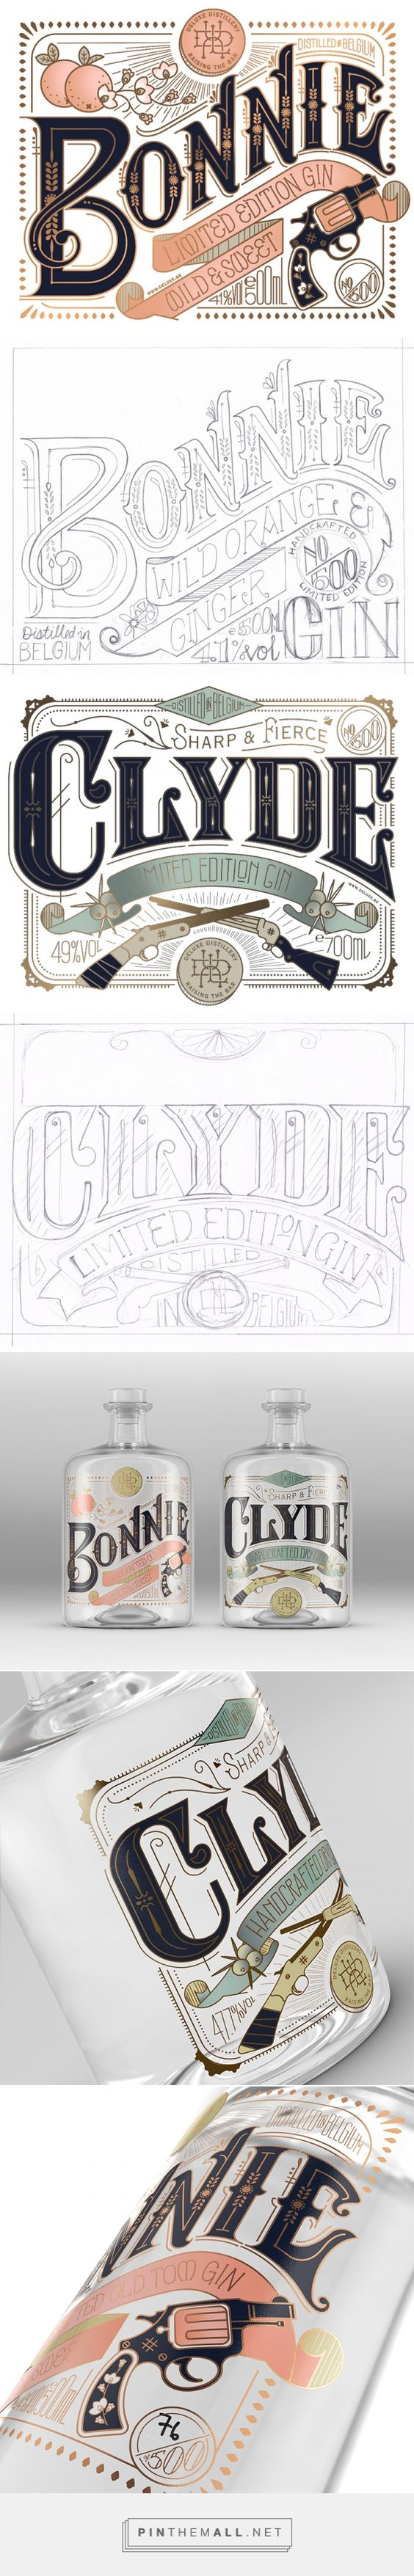 Bonnie & Clyde Gin Packaging Design by Pearly Yon (South Africa) - http://www.packagingoftheworld.com/2016/05/bonnie-clyde.html